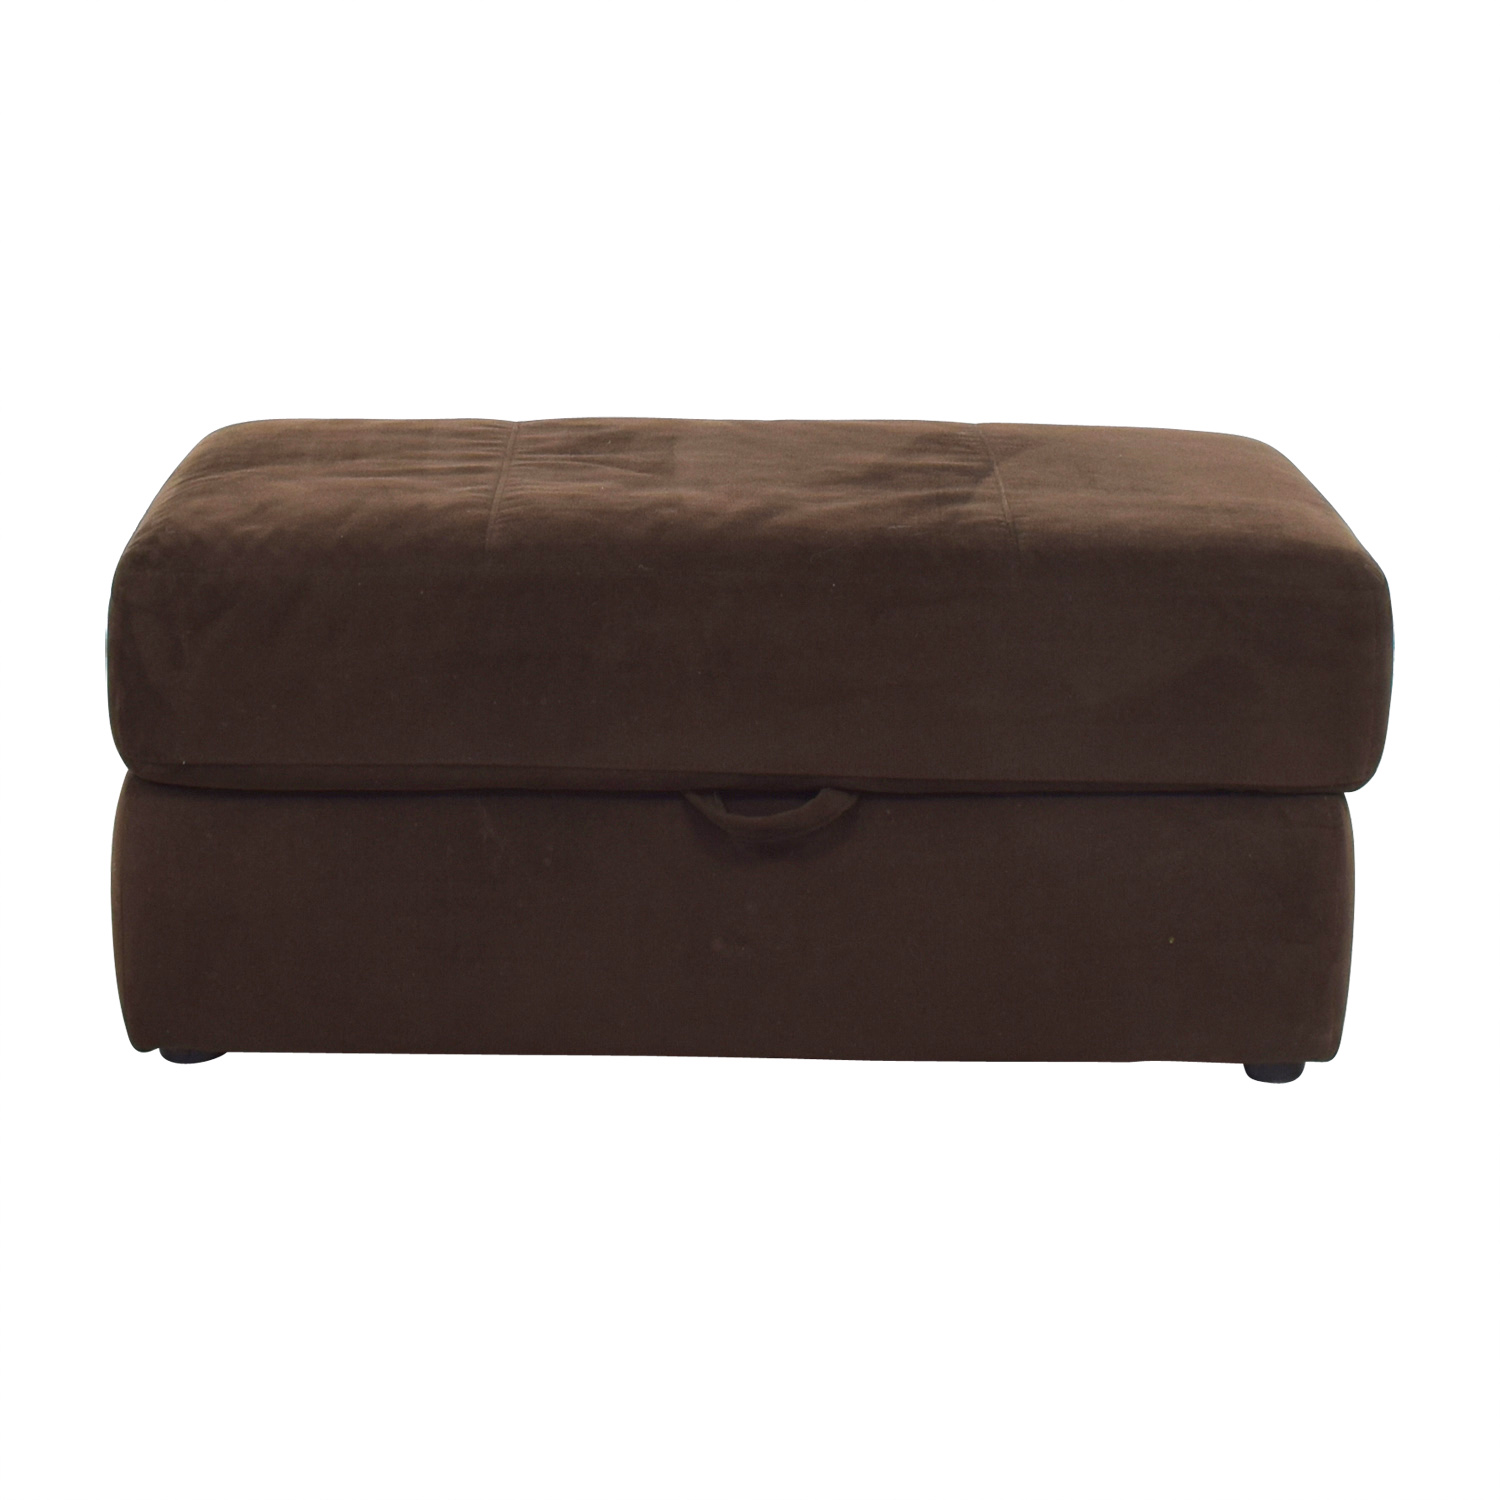 87 OFF Bobs Furniture Bobs Furniture Brown Storage Ottoman